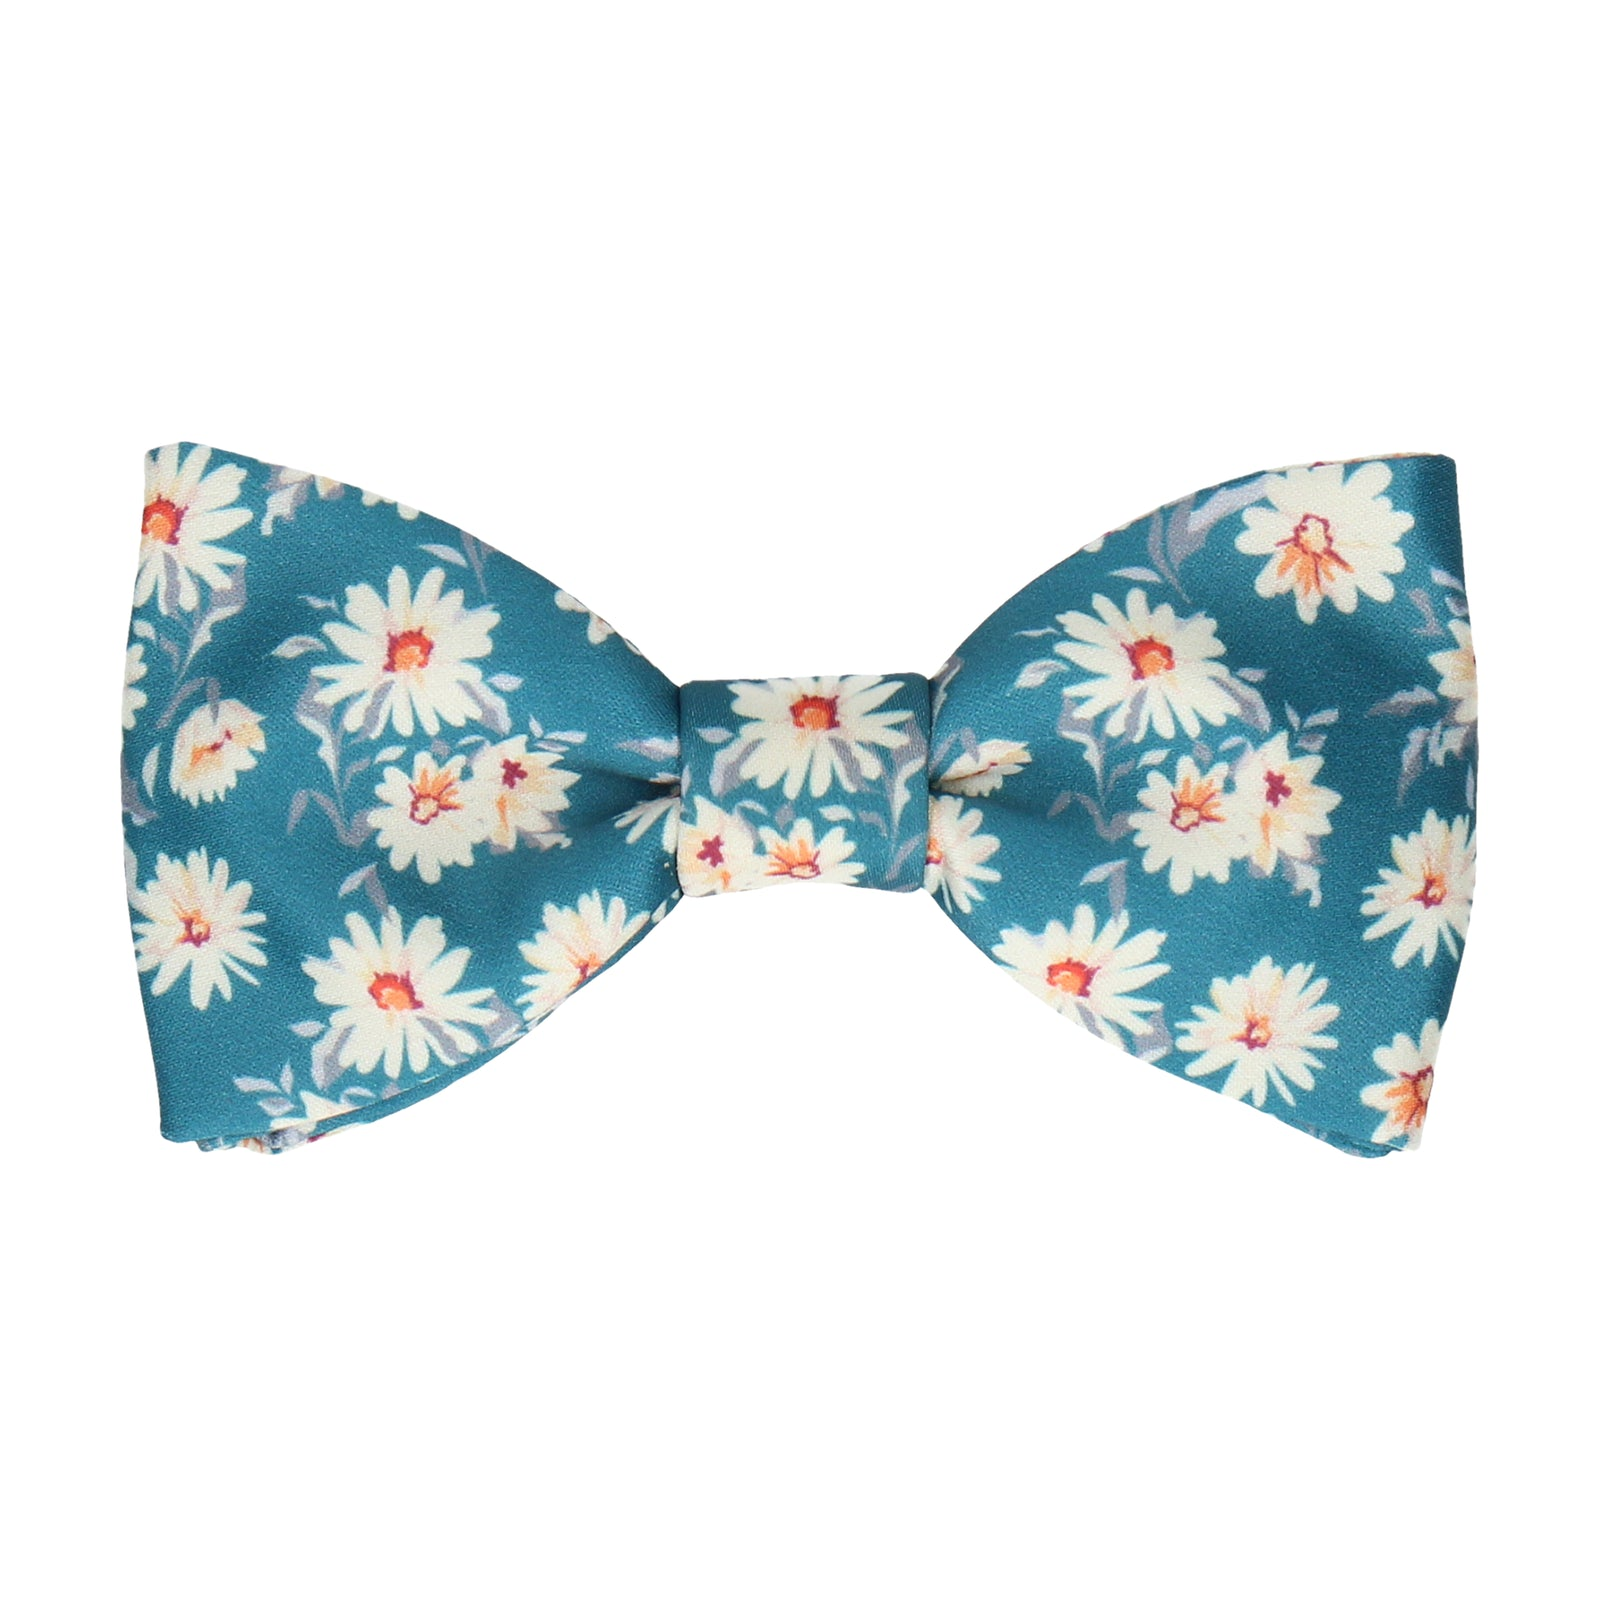 Daisy Print Emerald Sea Teal Bow Tie